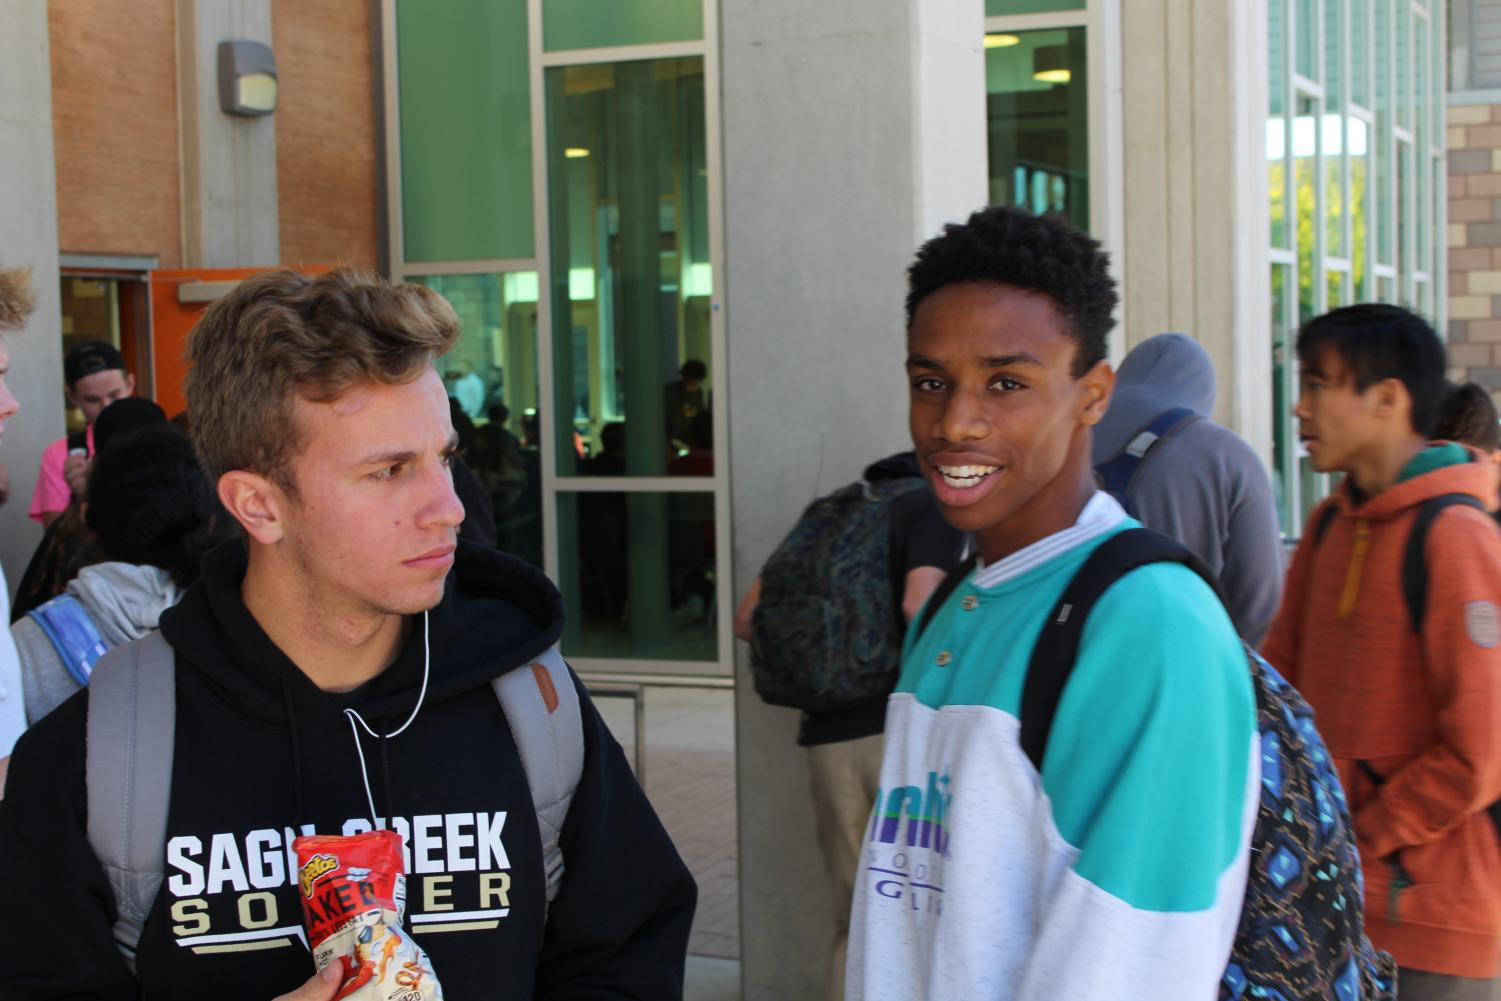 Titus Washington and Jet Trask wait in line to buy lunch. Both Washington and Trask are going to play collegiate soccer at Sacramento State University in the Fall.